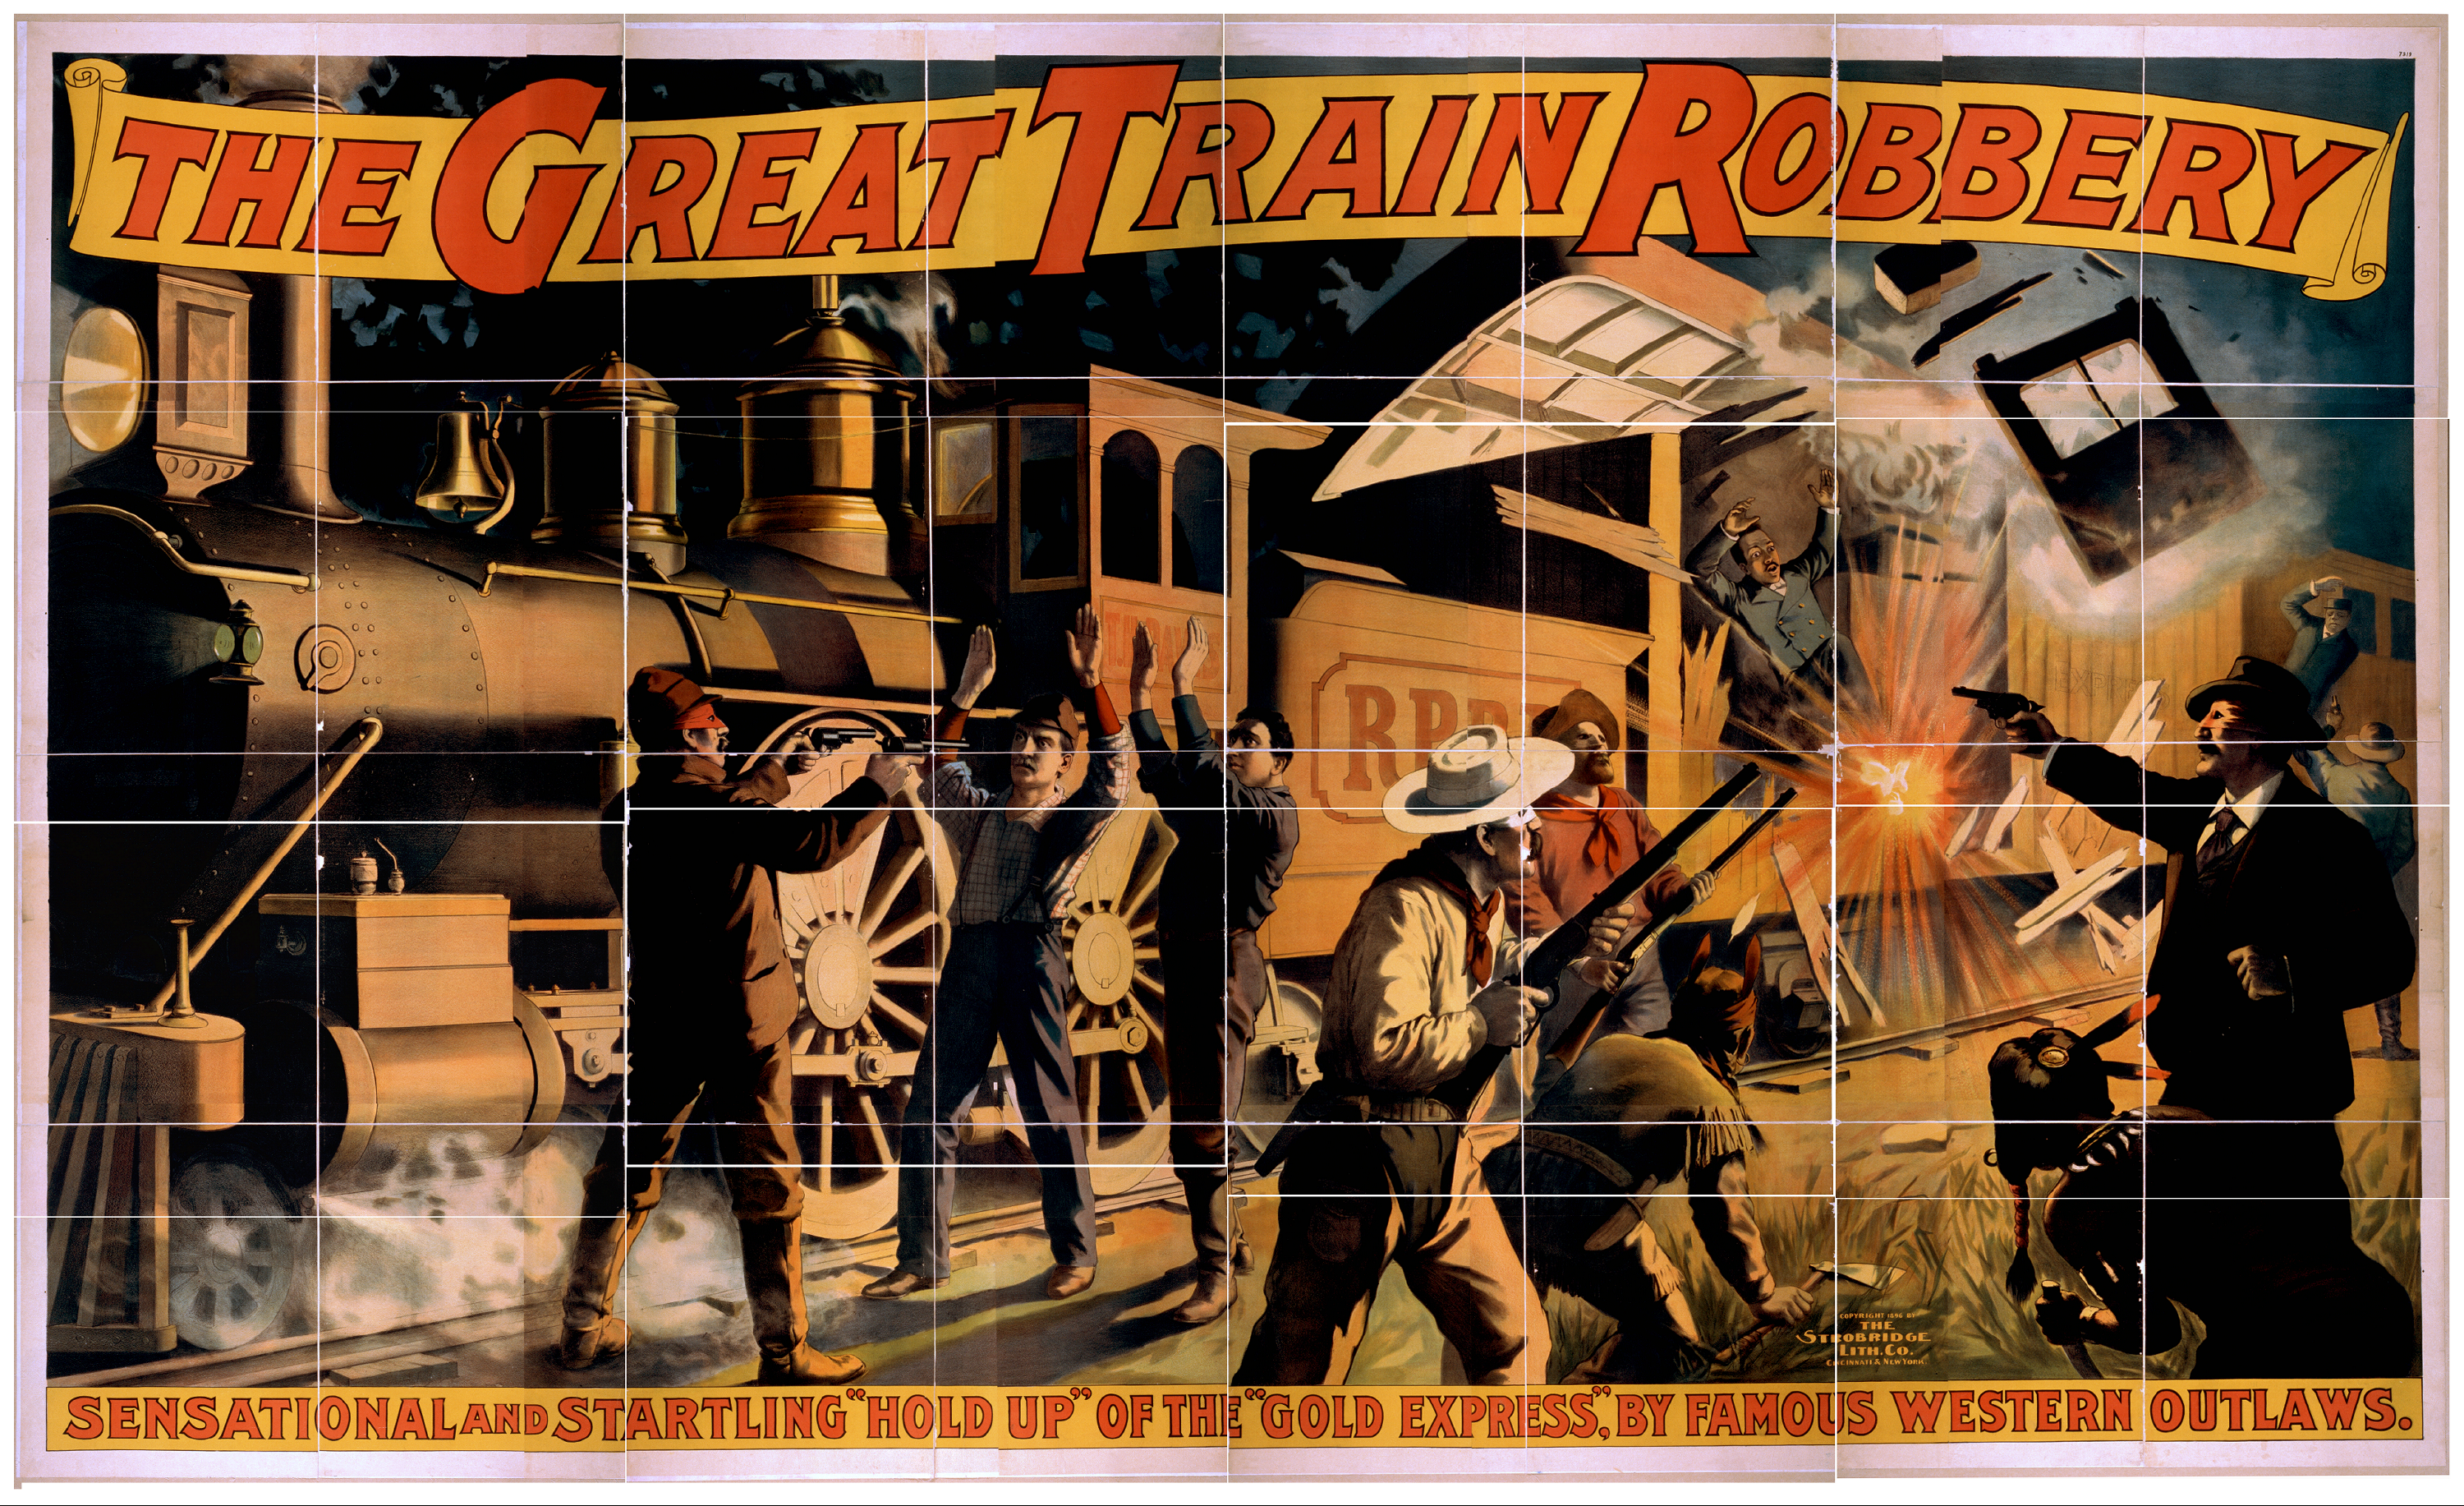 The Great Train Robbery | Free Images at Clker.com